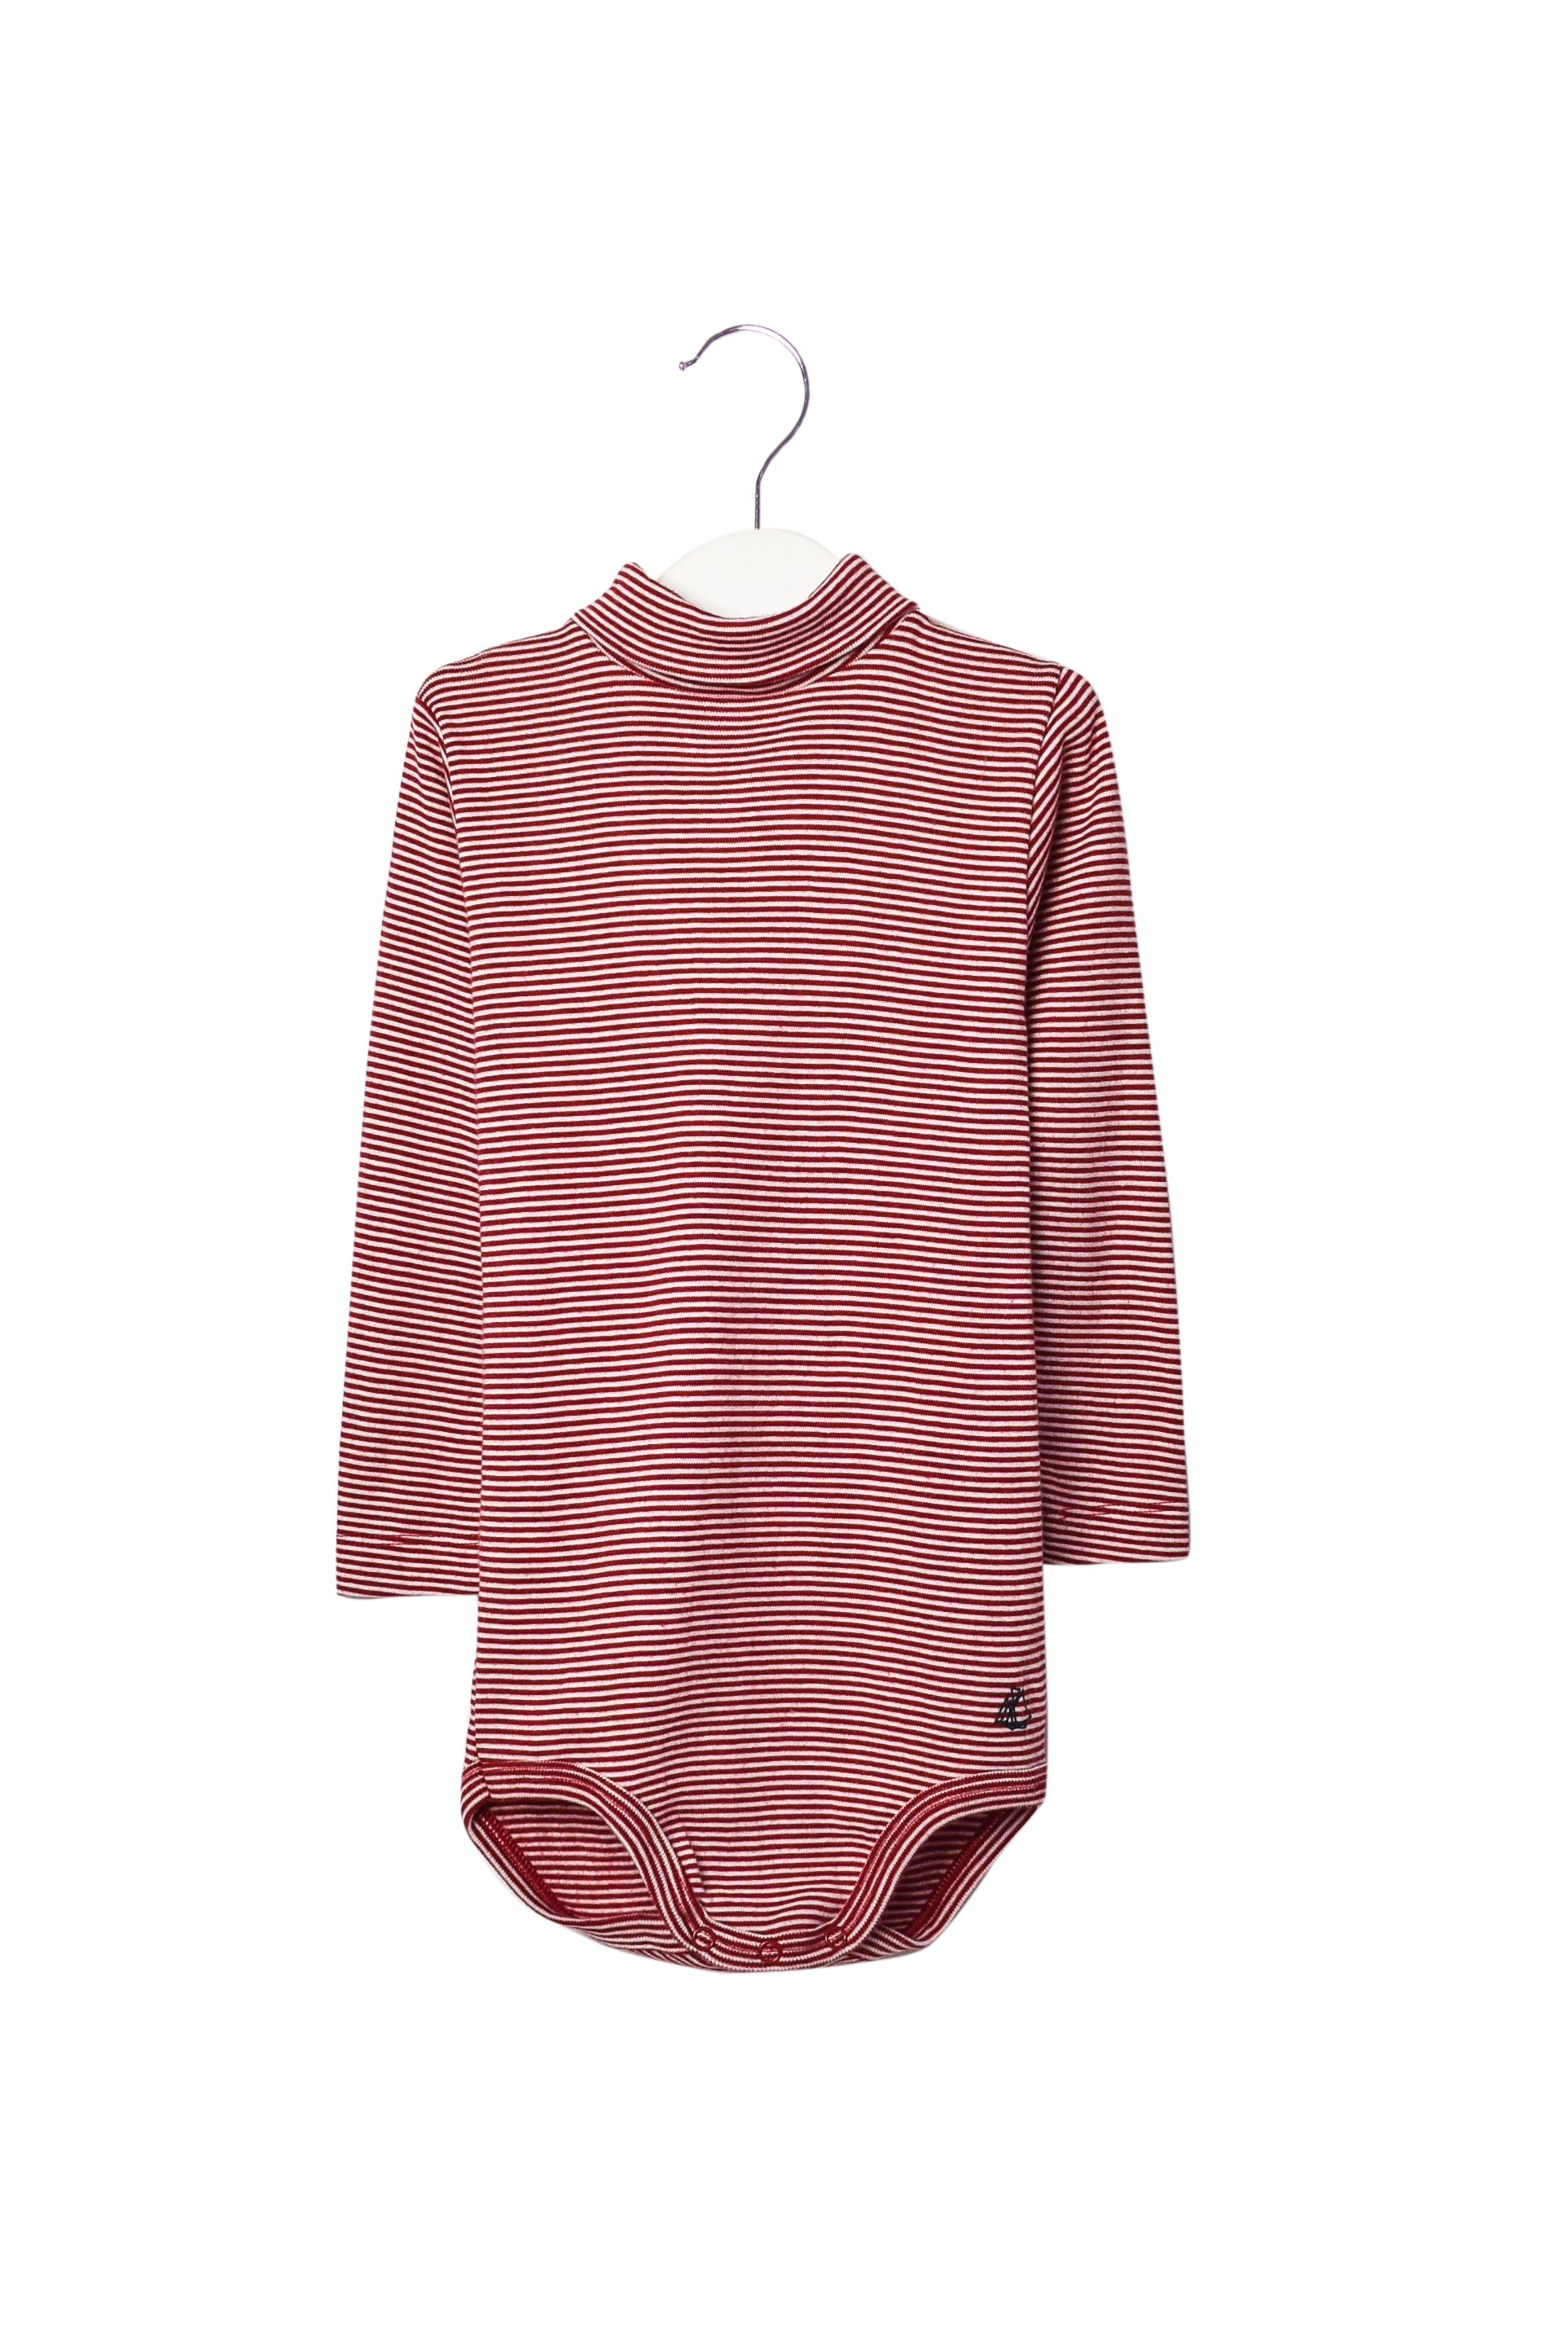 10006612 Petit Bateau Kids~Bodysuit 24M at Retykle